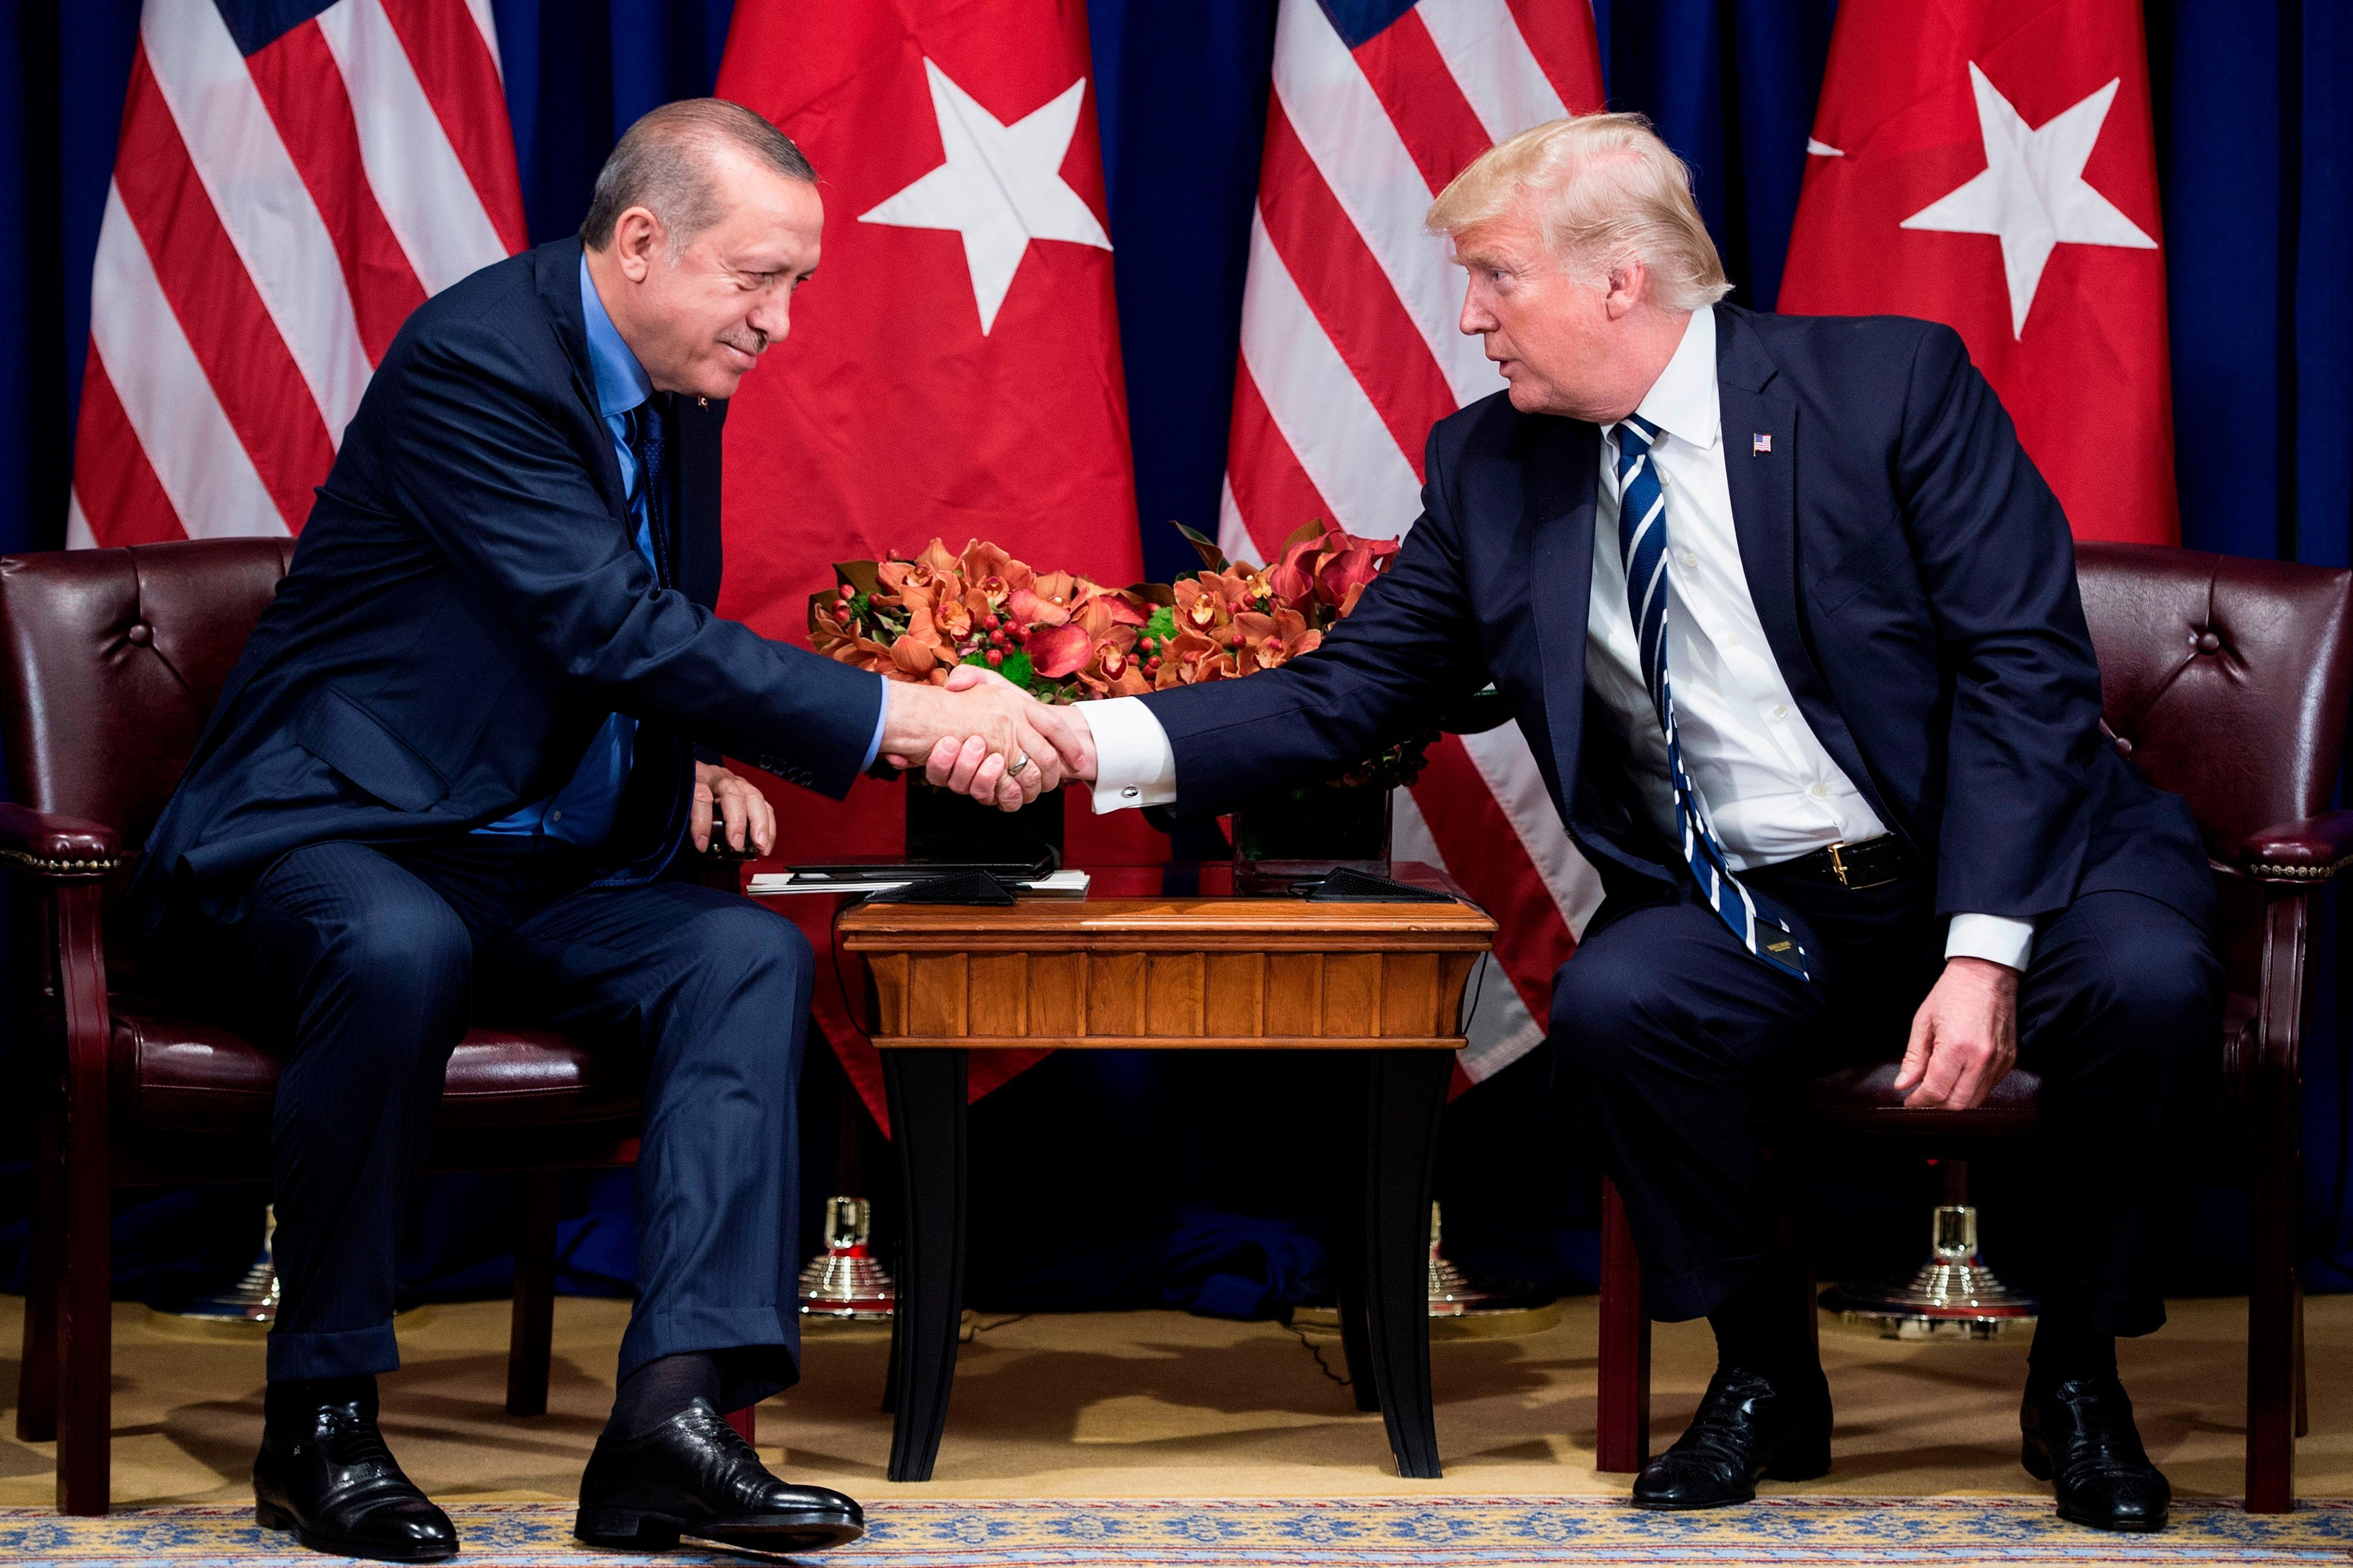 Turkey S Erdogan Is A Thug And Autocrat Is It Time To Shrink NATO